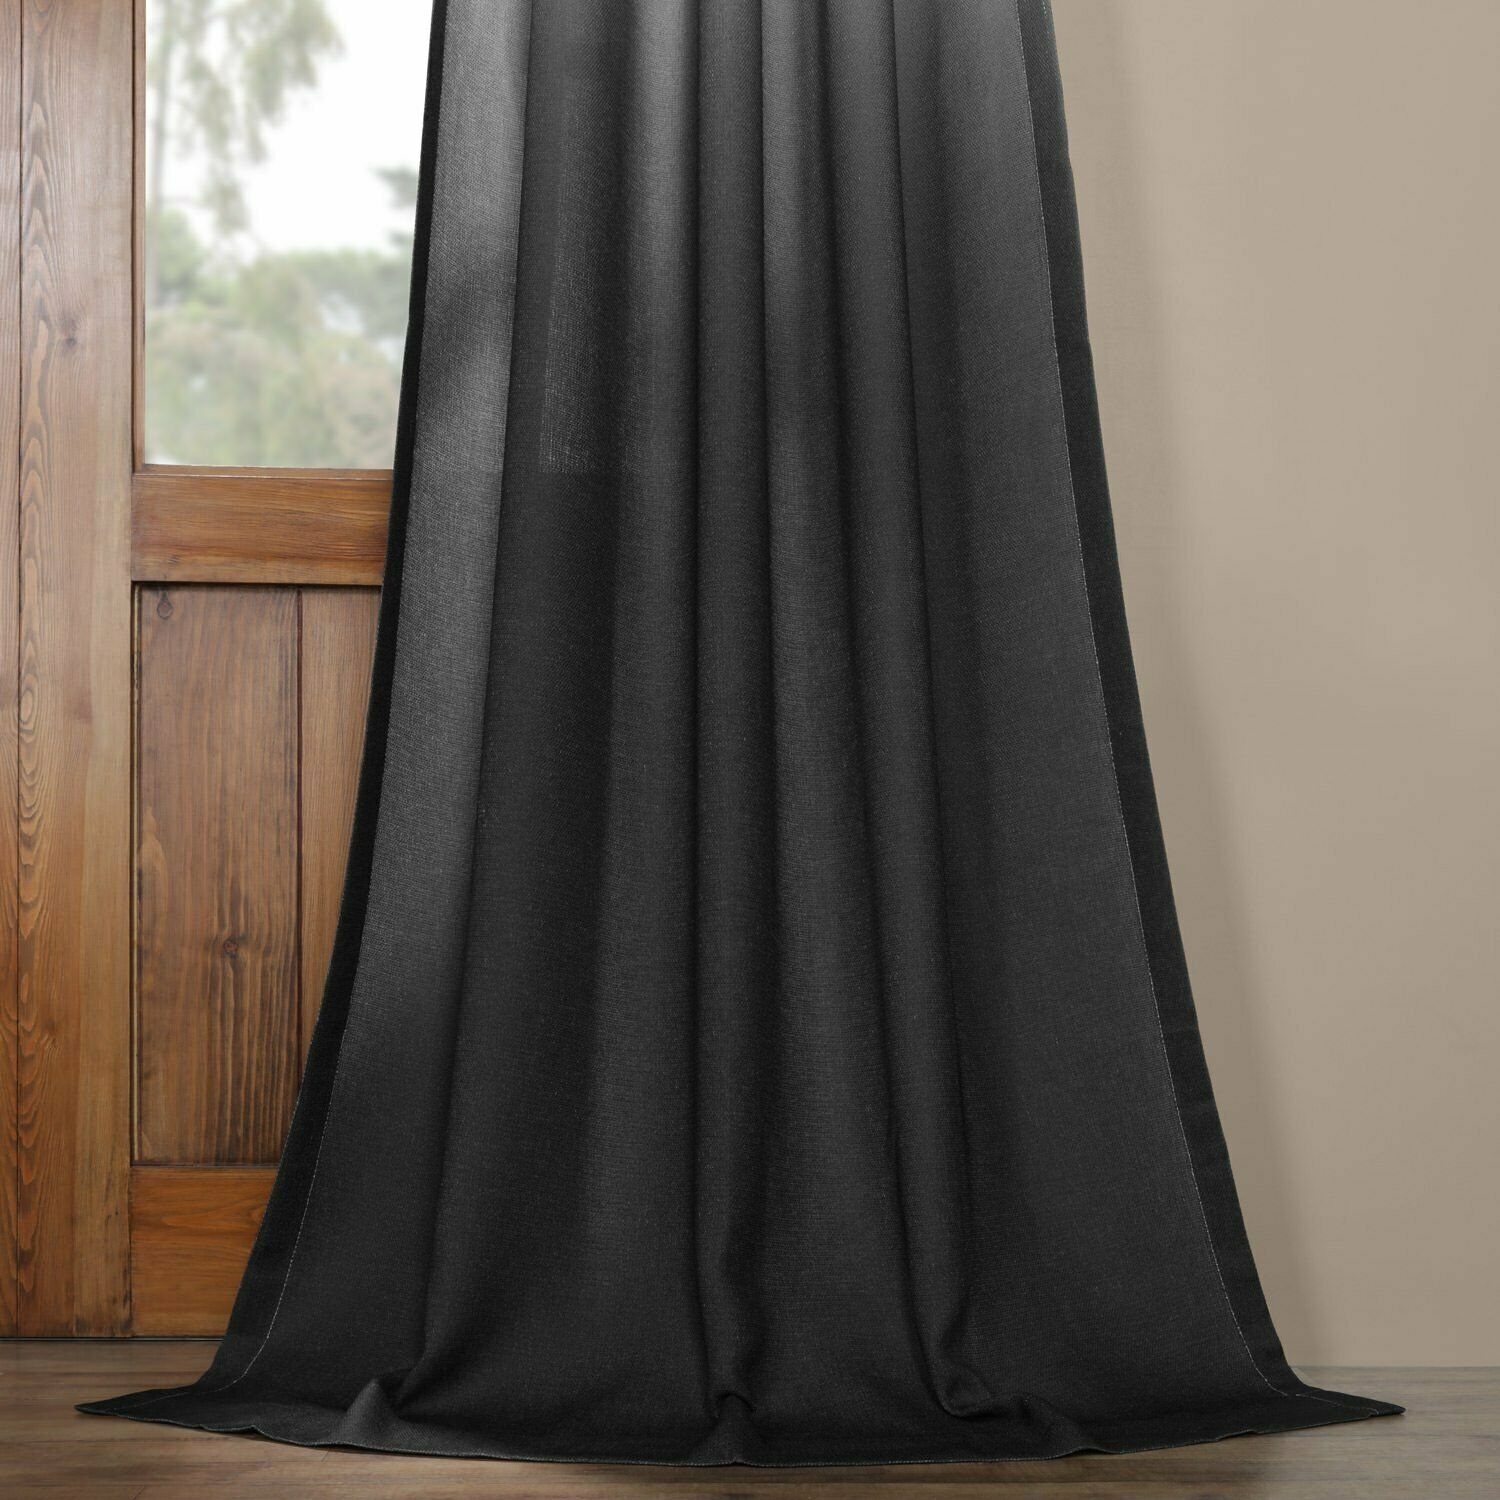 """Ombre Faux Linen Semi Sheer Curtain Black 50 X 84 3"""" Pole Pocket With Hook Belt Throughout Ombre Faux Linen Semi Sheer Curtains (View 11 of 20)"""